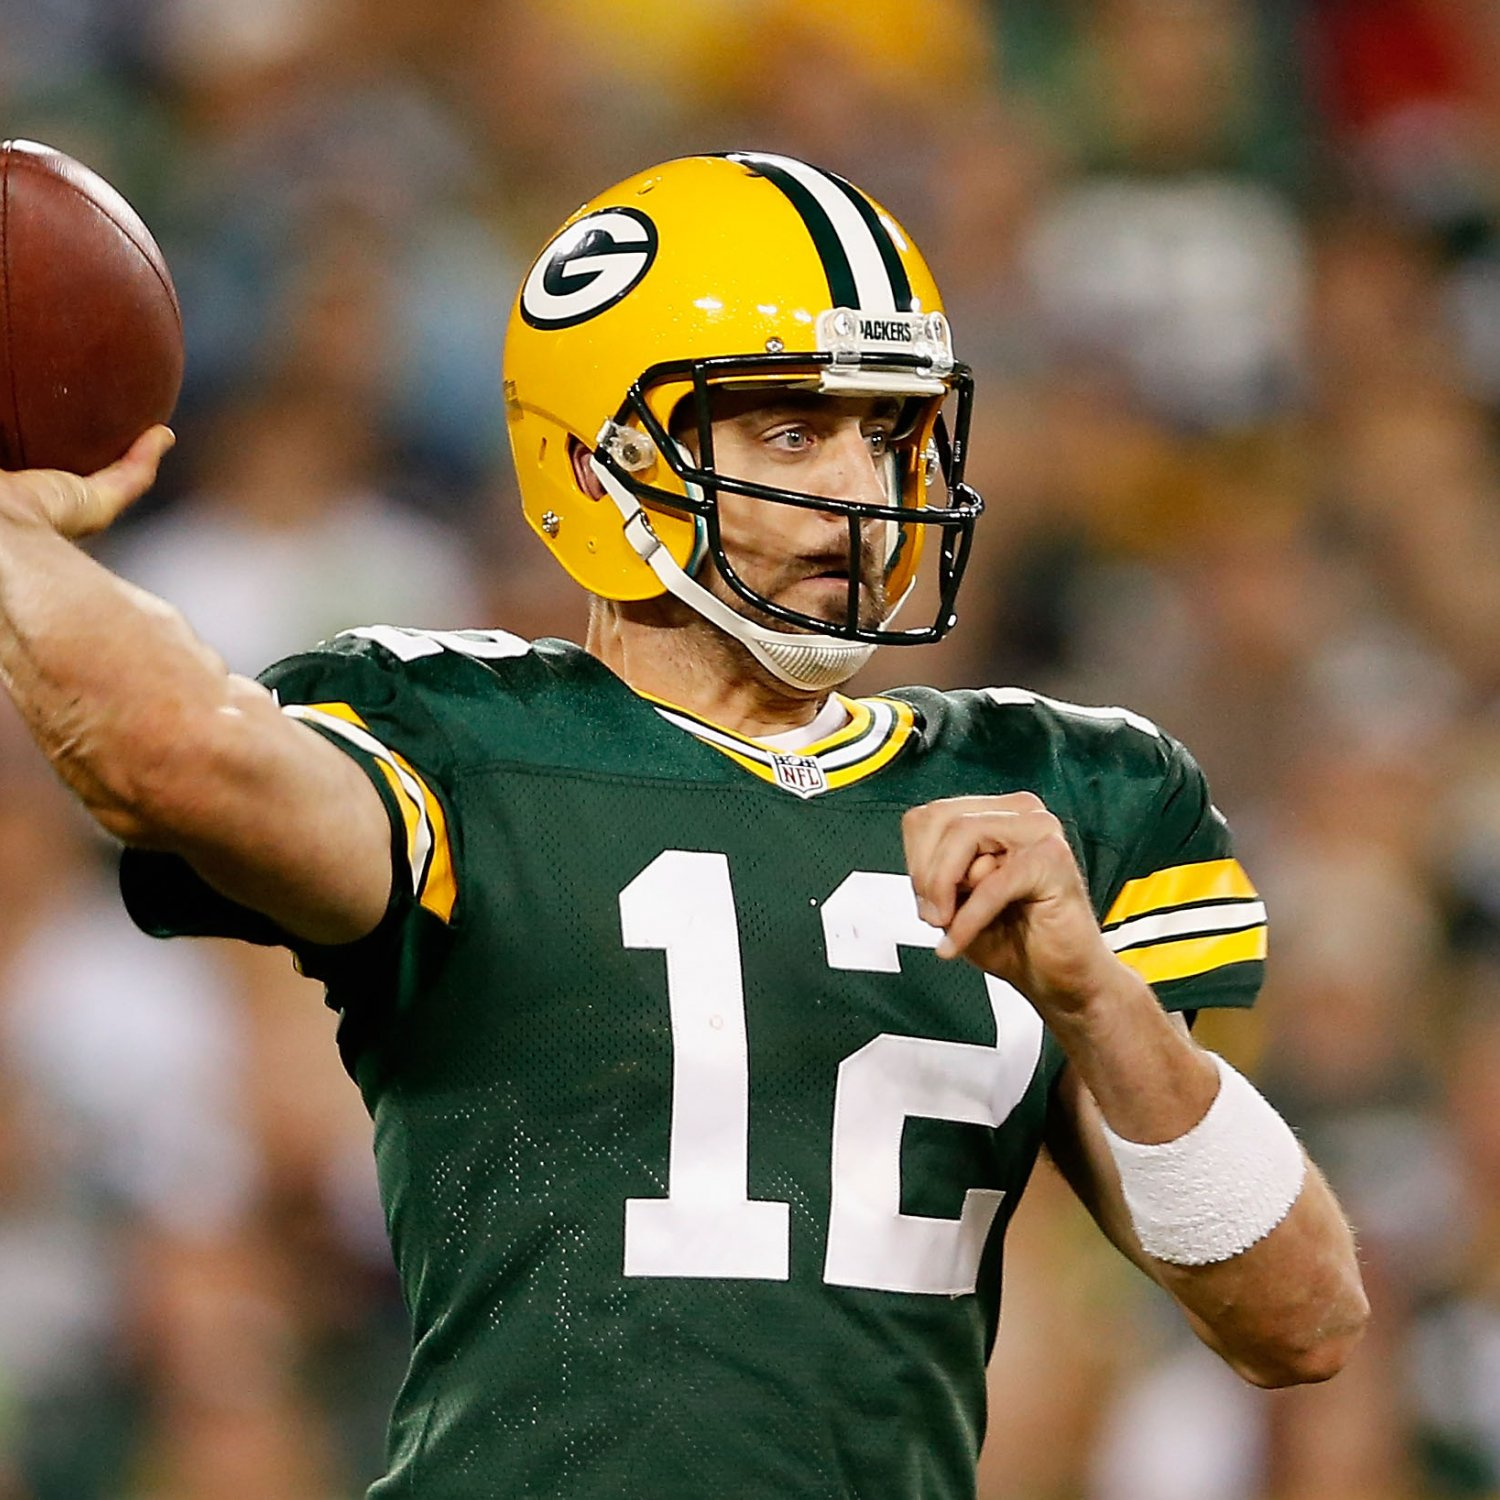 Green Bay Packers Vs Kansas City Chiefs Live Stream